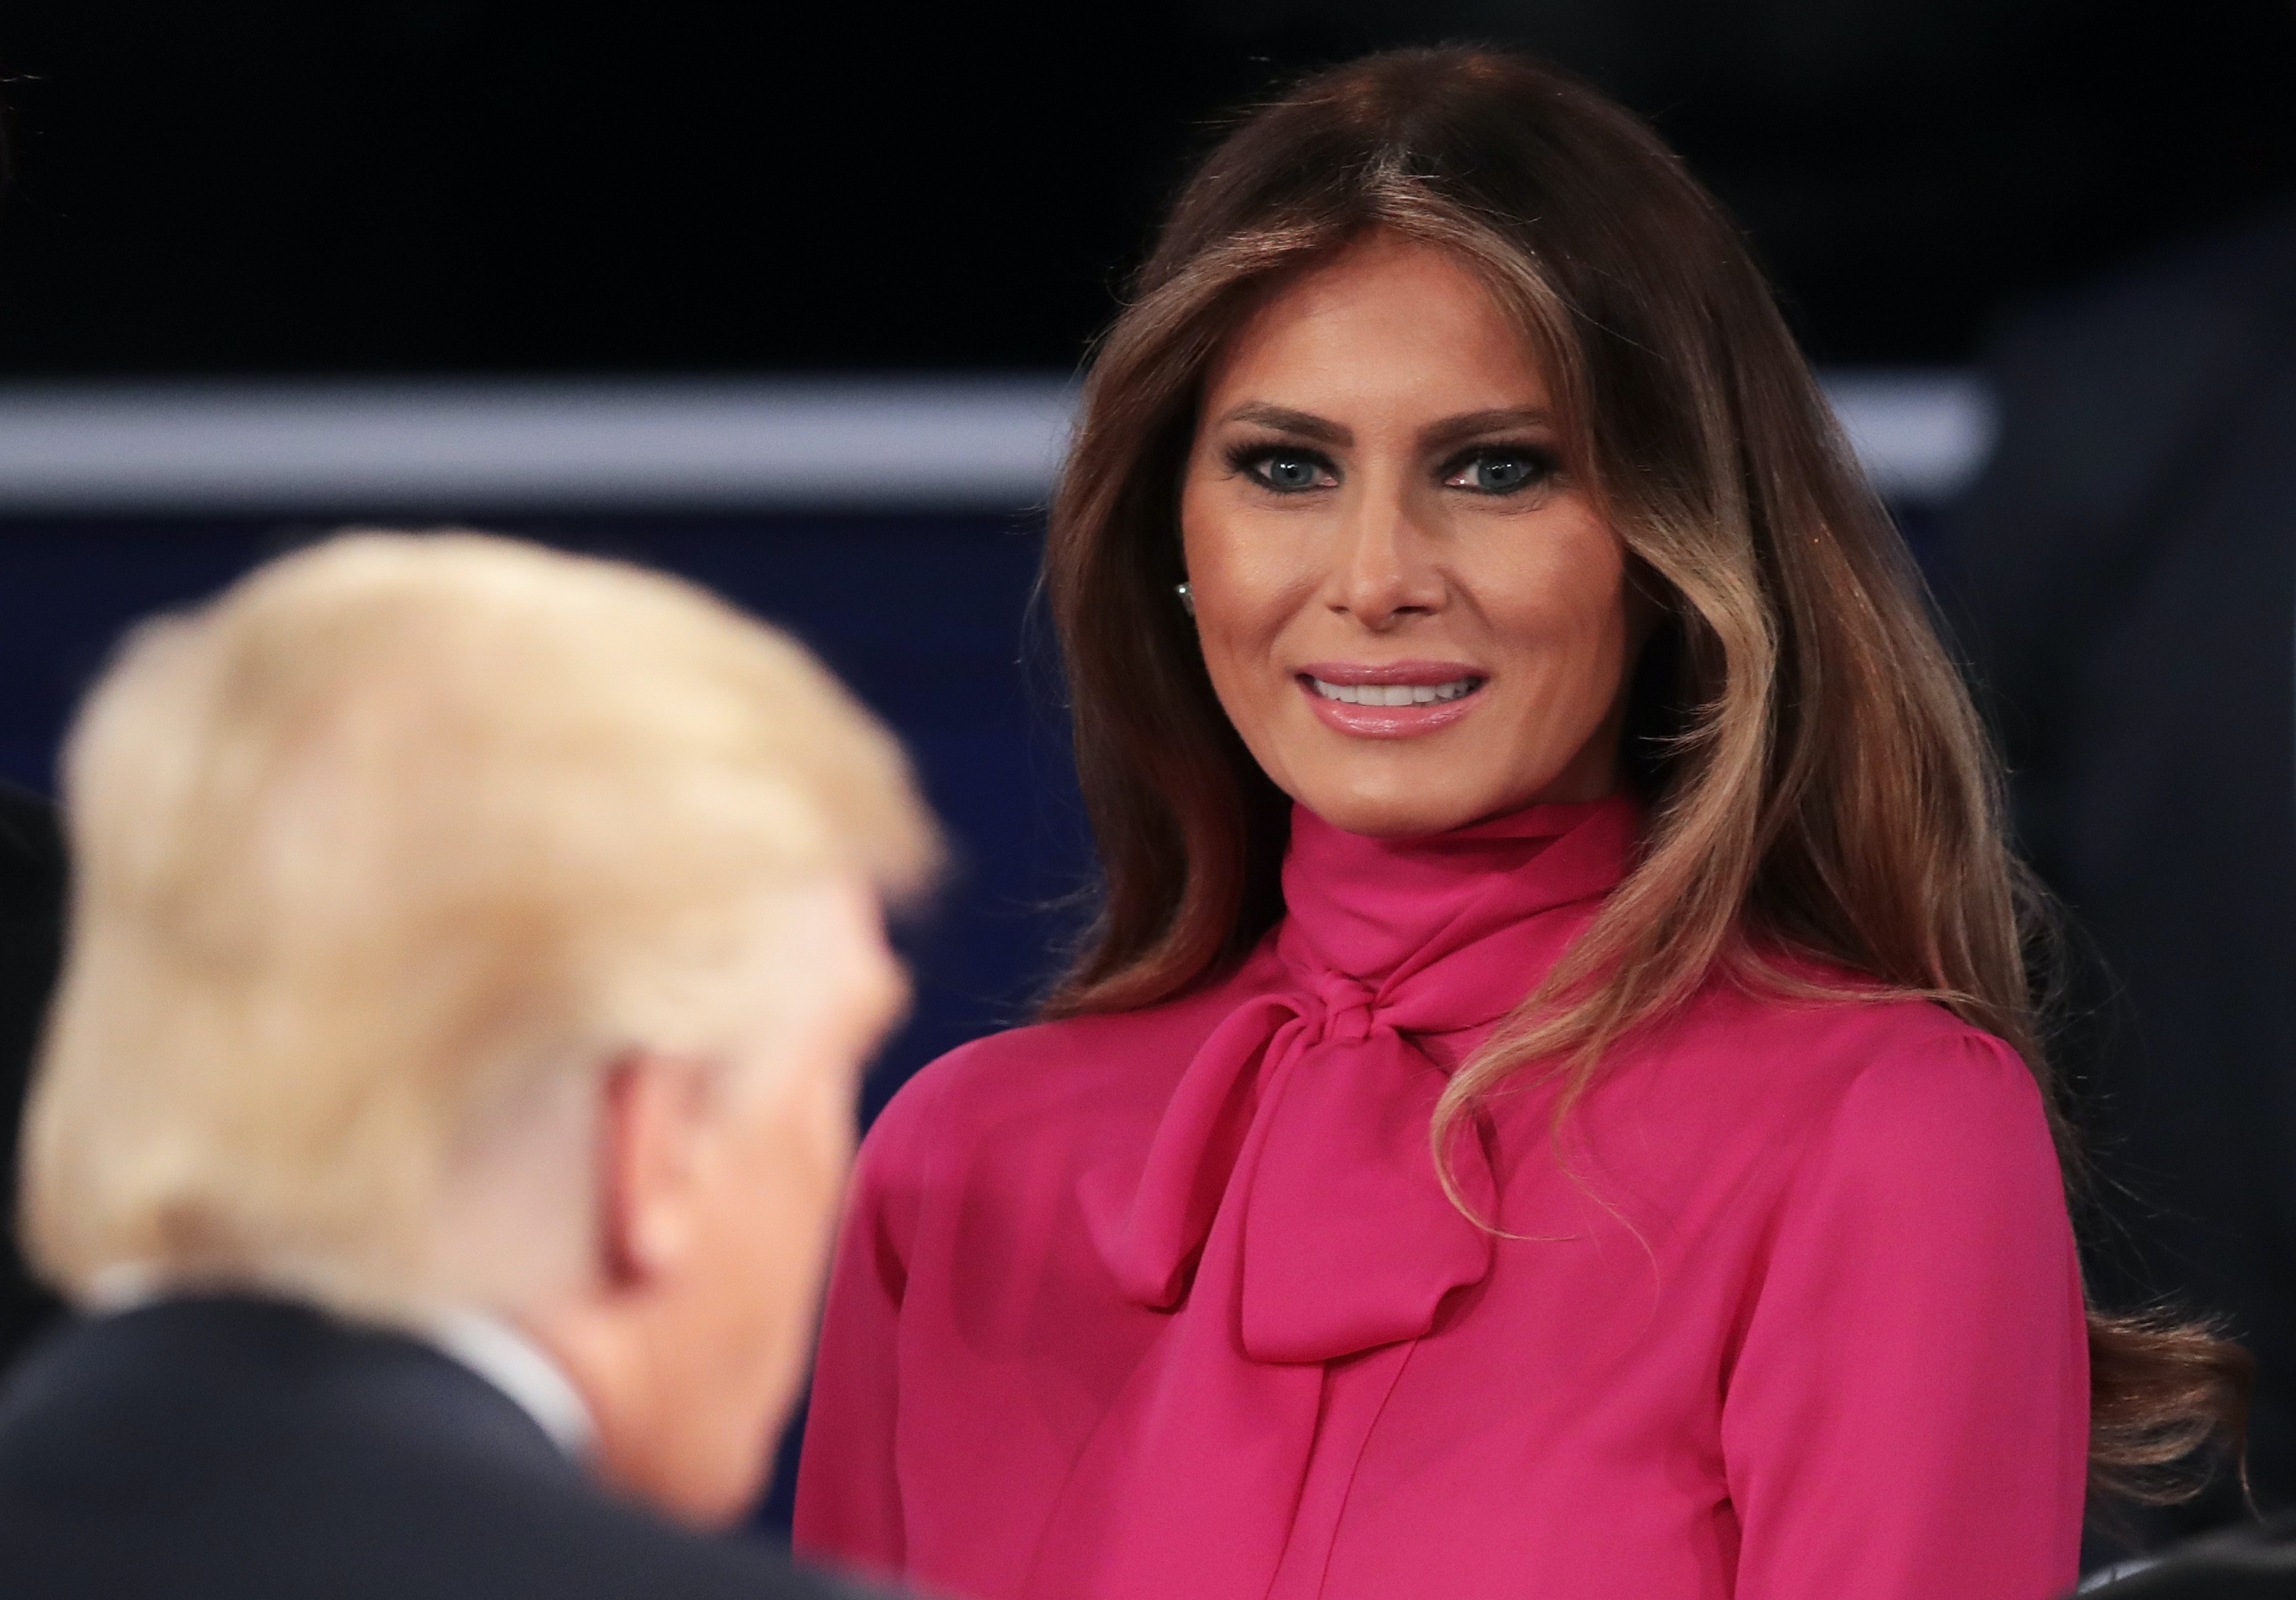 Melania Trump on groping allegations: R